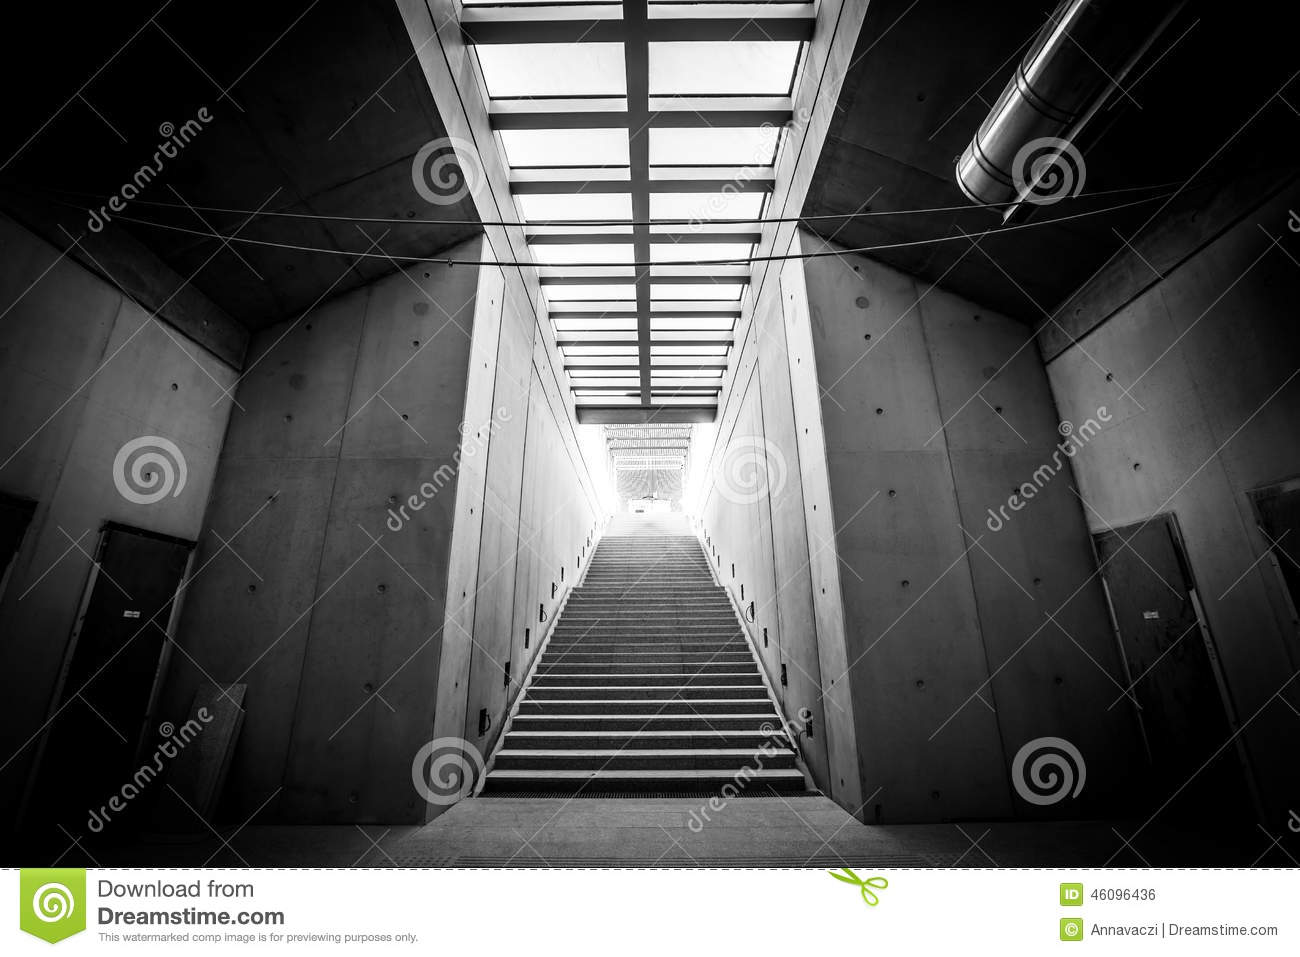 Modern Building Interior Stock Photo - Image: 46096436